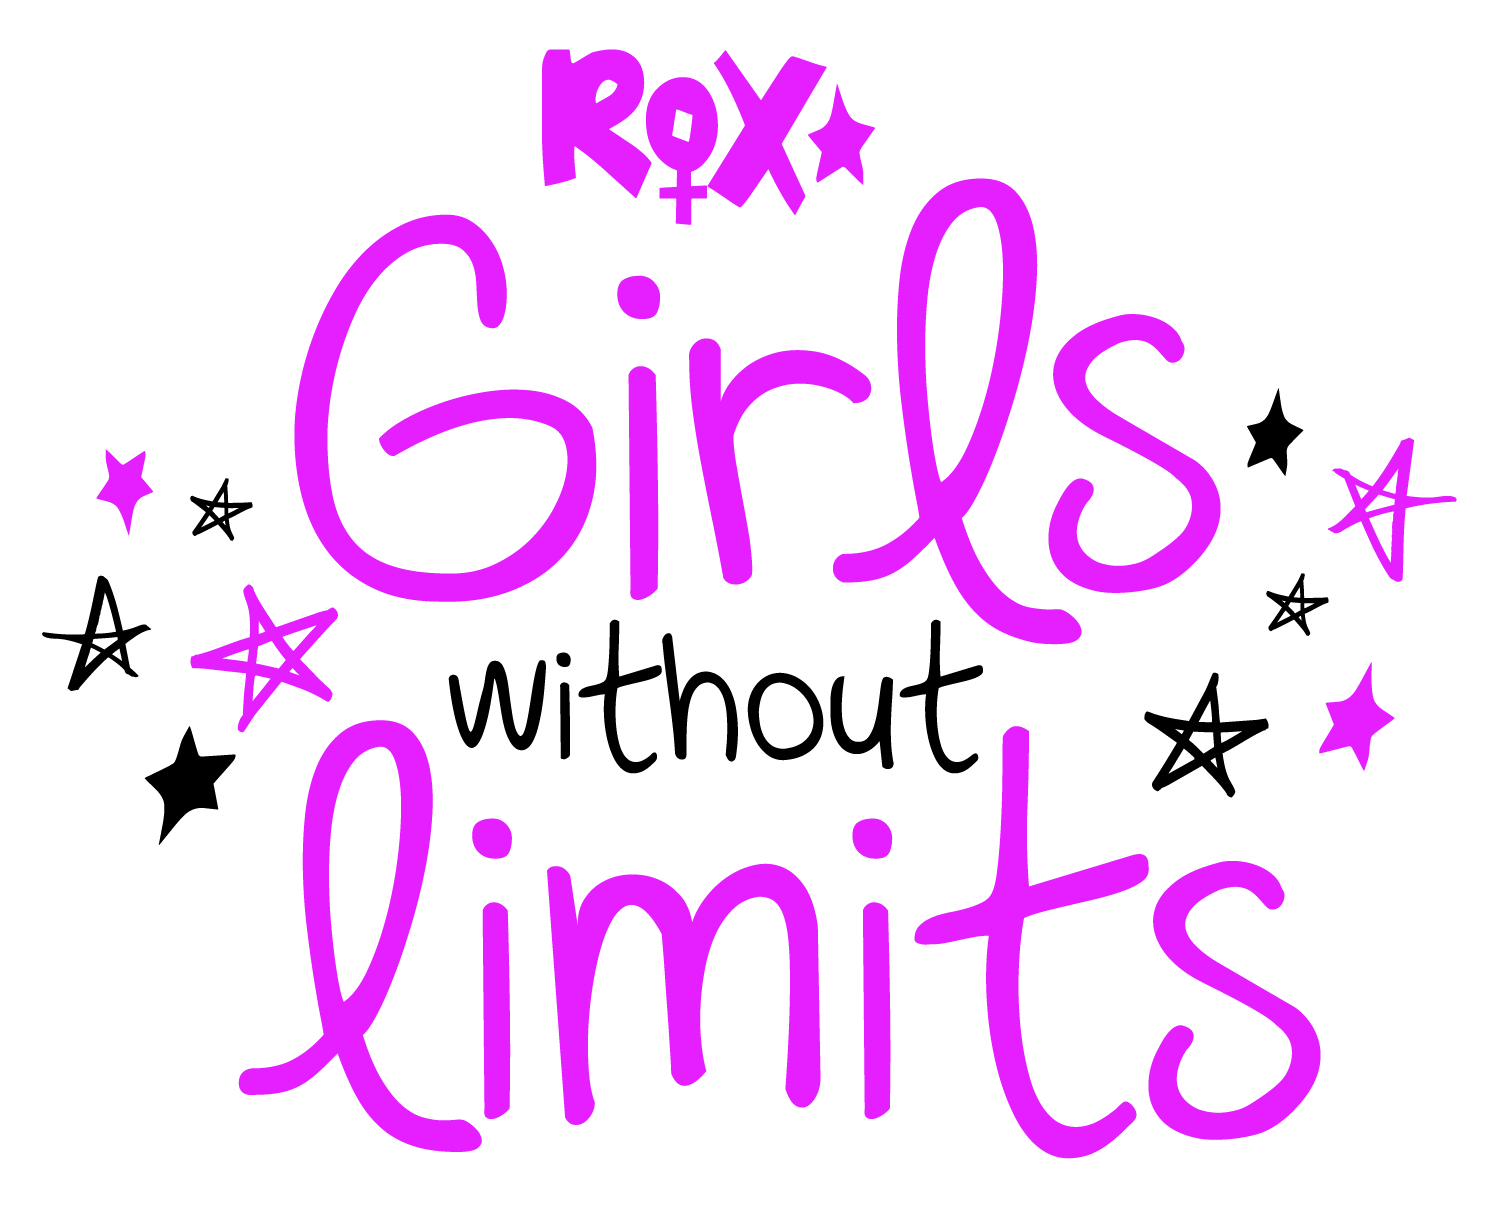 GirlsWithoutLimits_logo-01.jpg